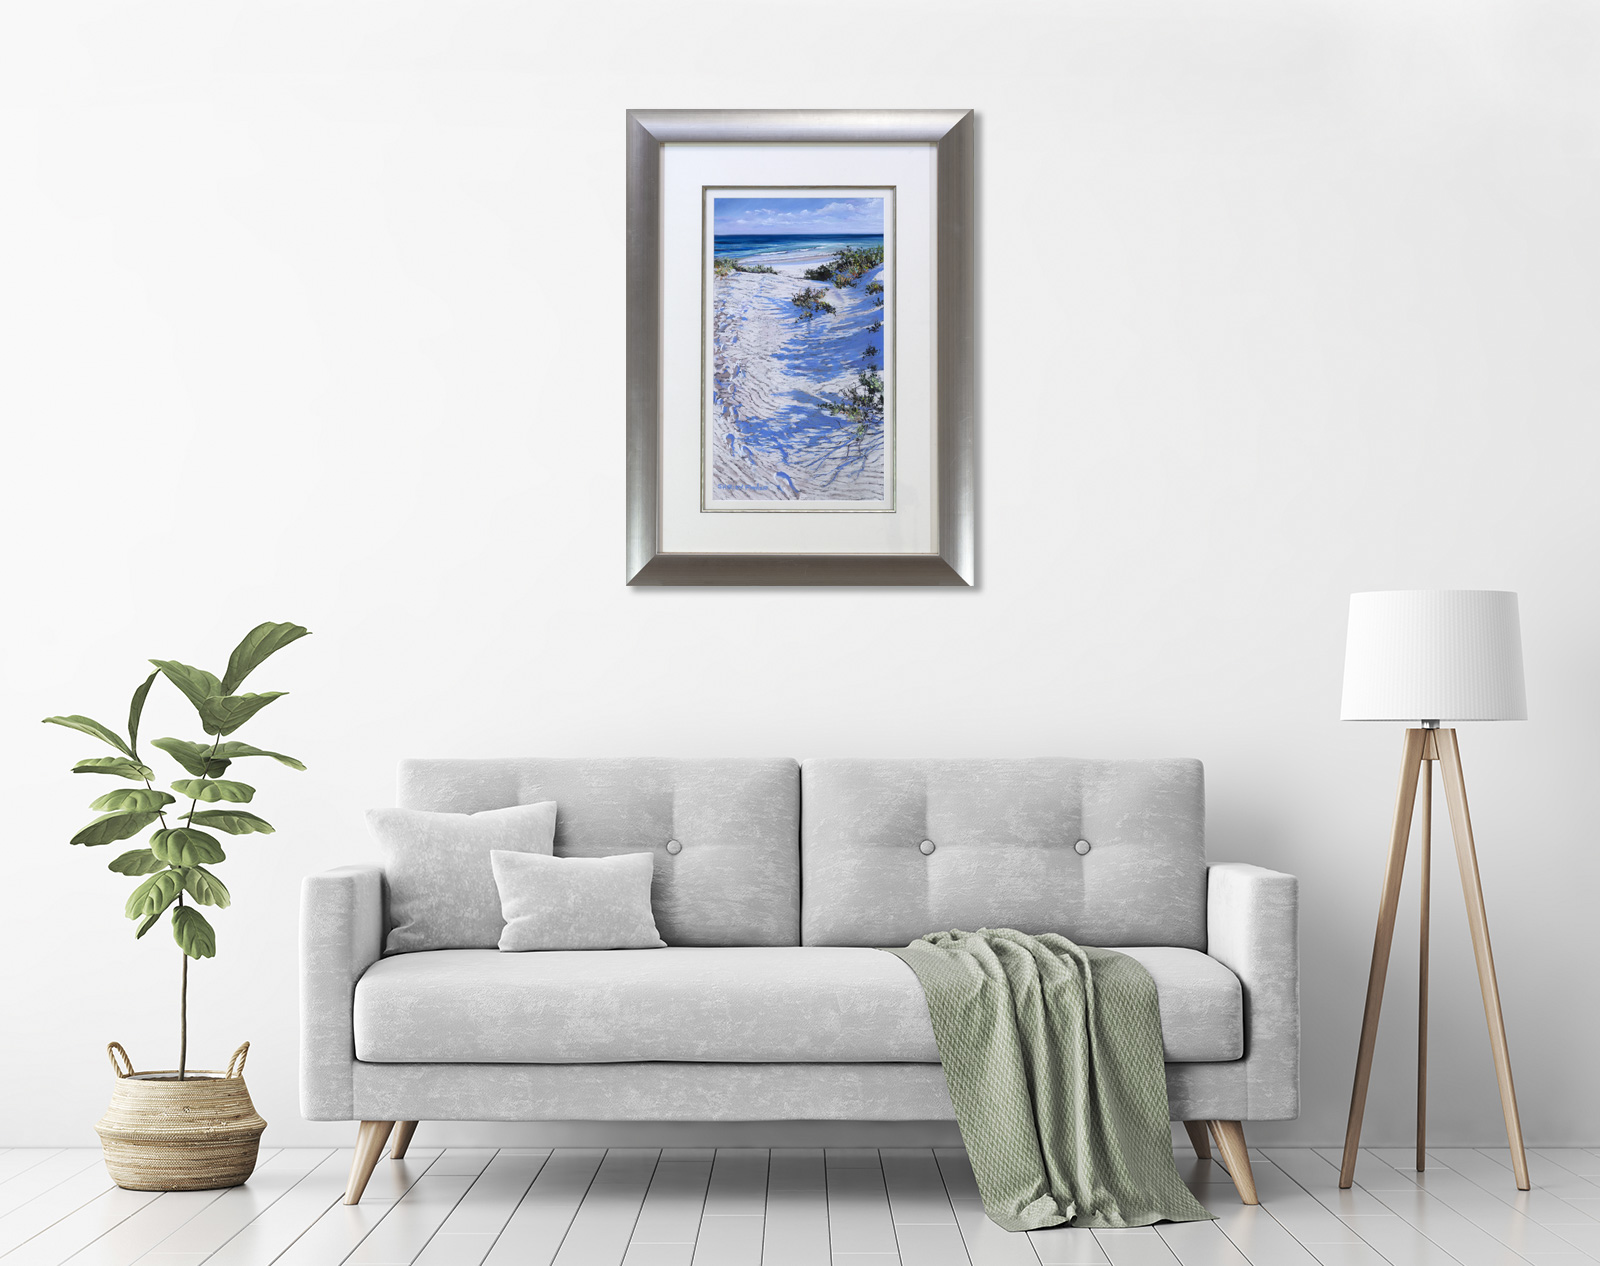 Coastal Tranquility Framed in a room